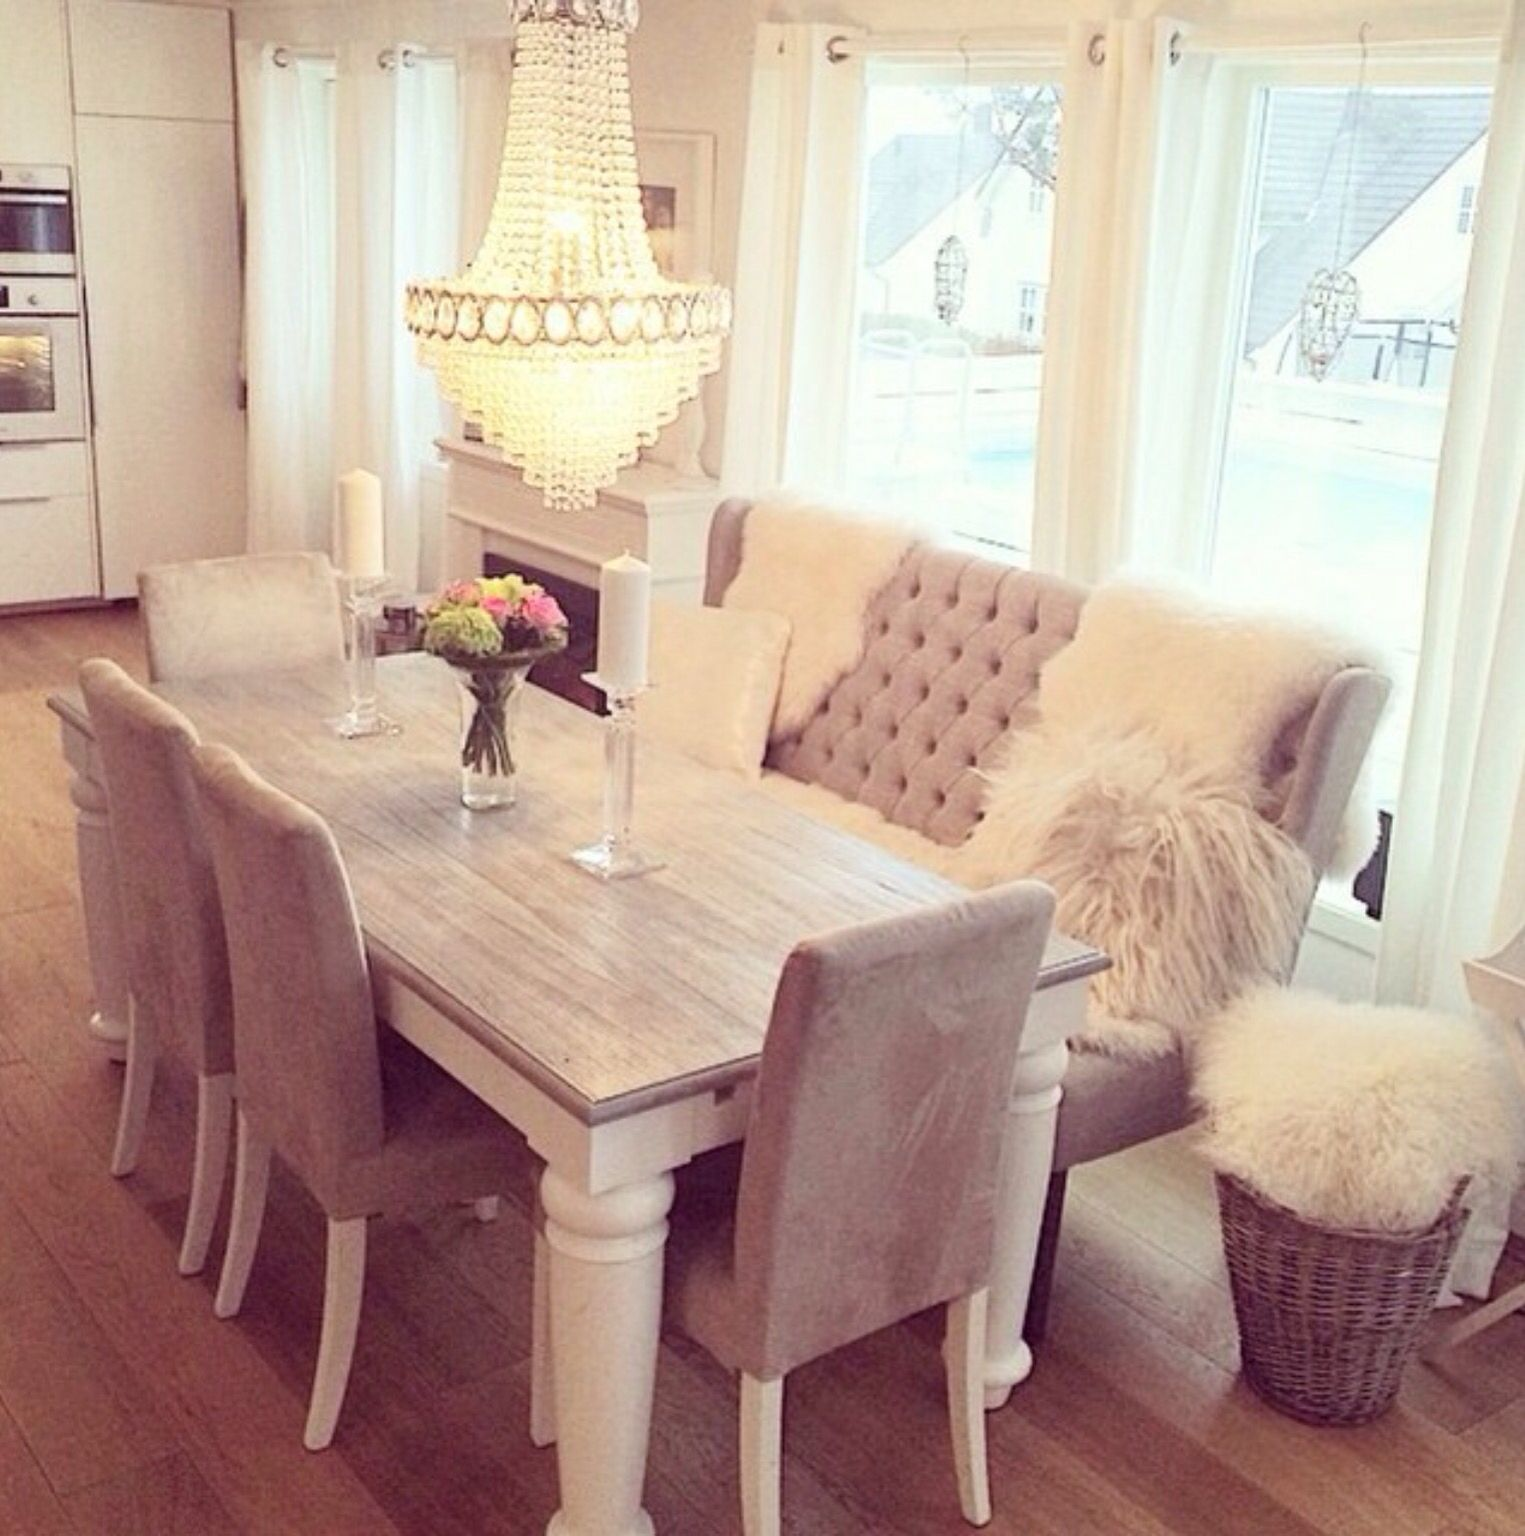 Love The Grey Chairs With The Benchkeeping The Same Color Theme Extraordinary Dining Room With Bench Seating Decorating Inspiration